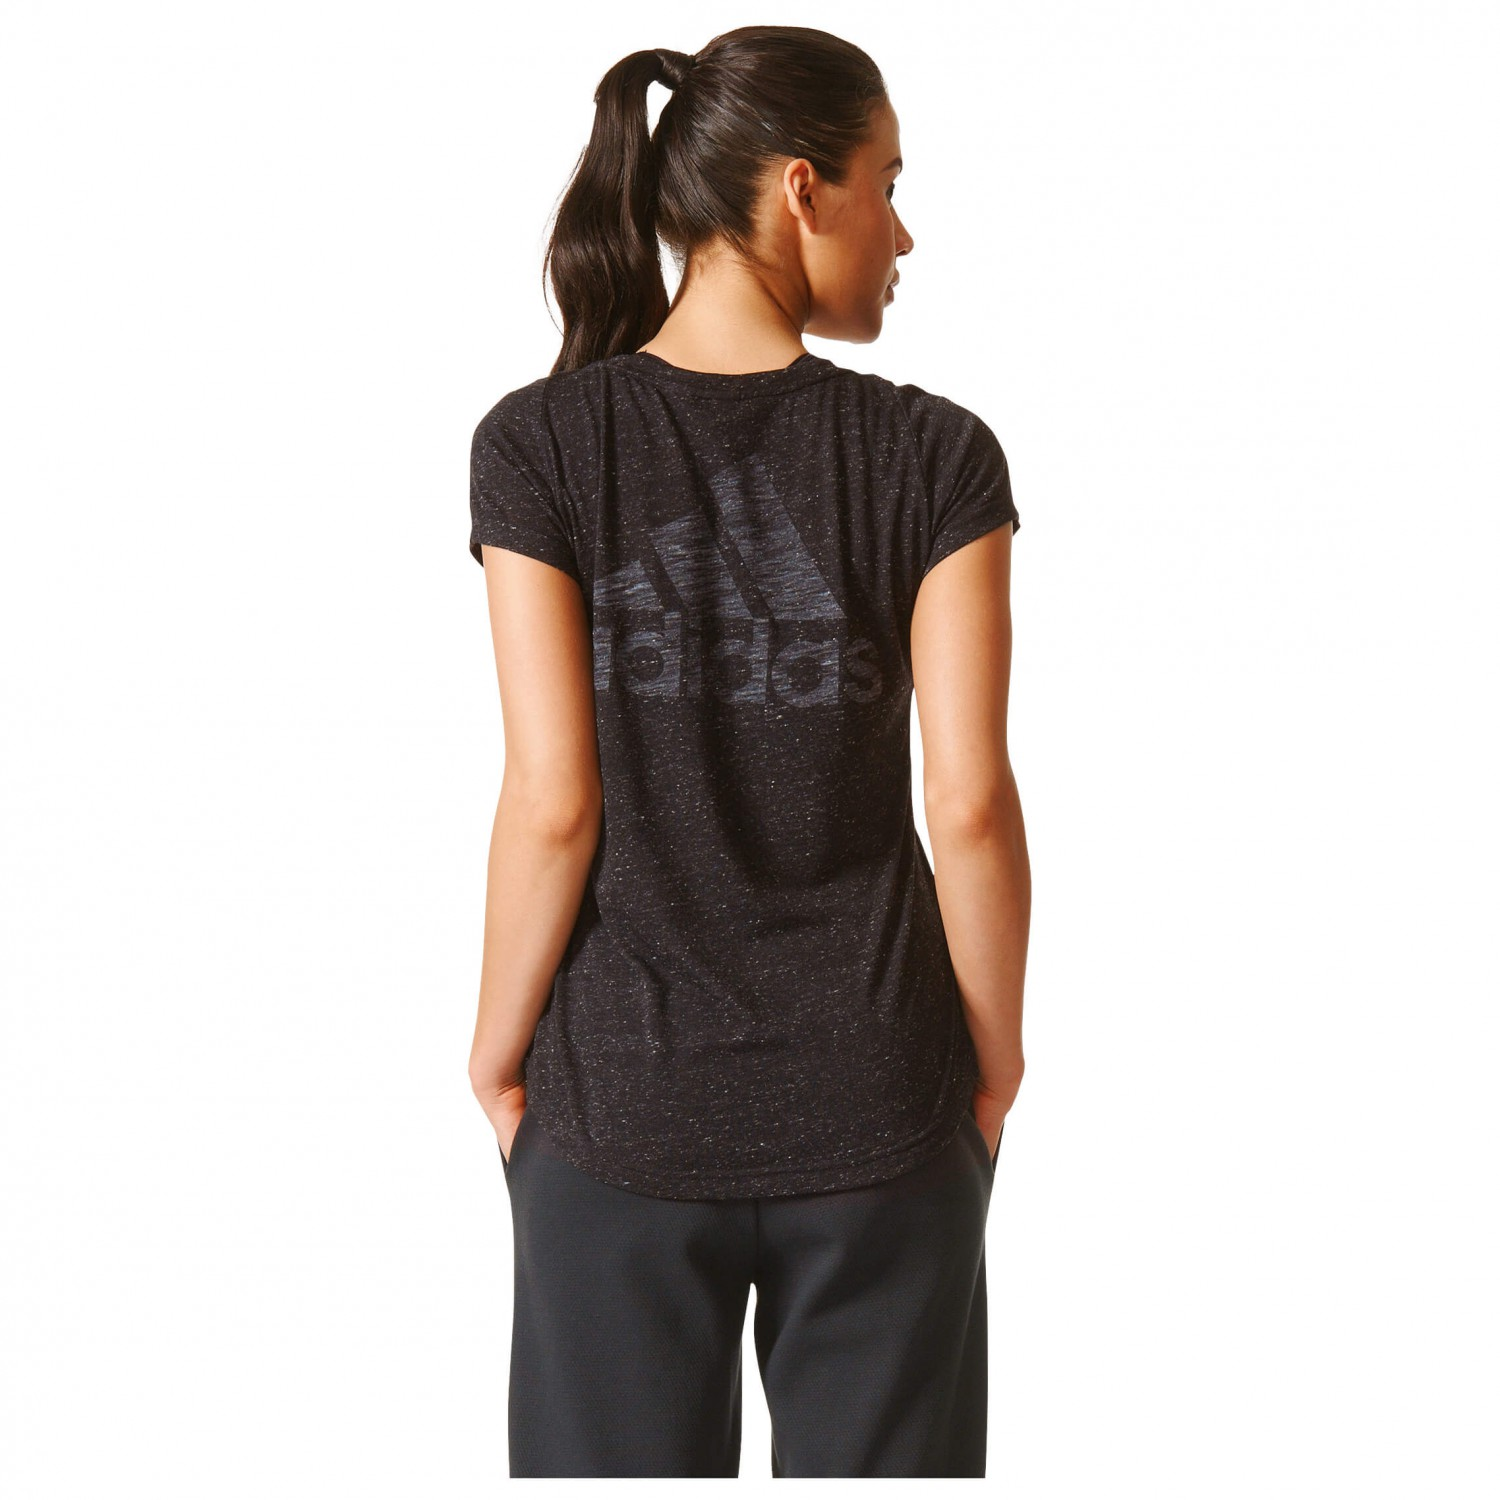 Adidas Winners Tee Sport shirt Women's | Buy online